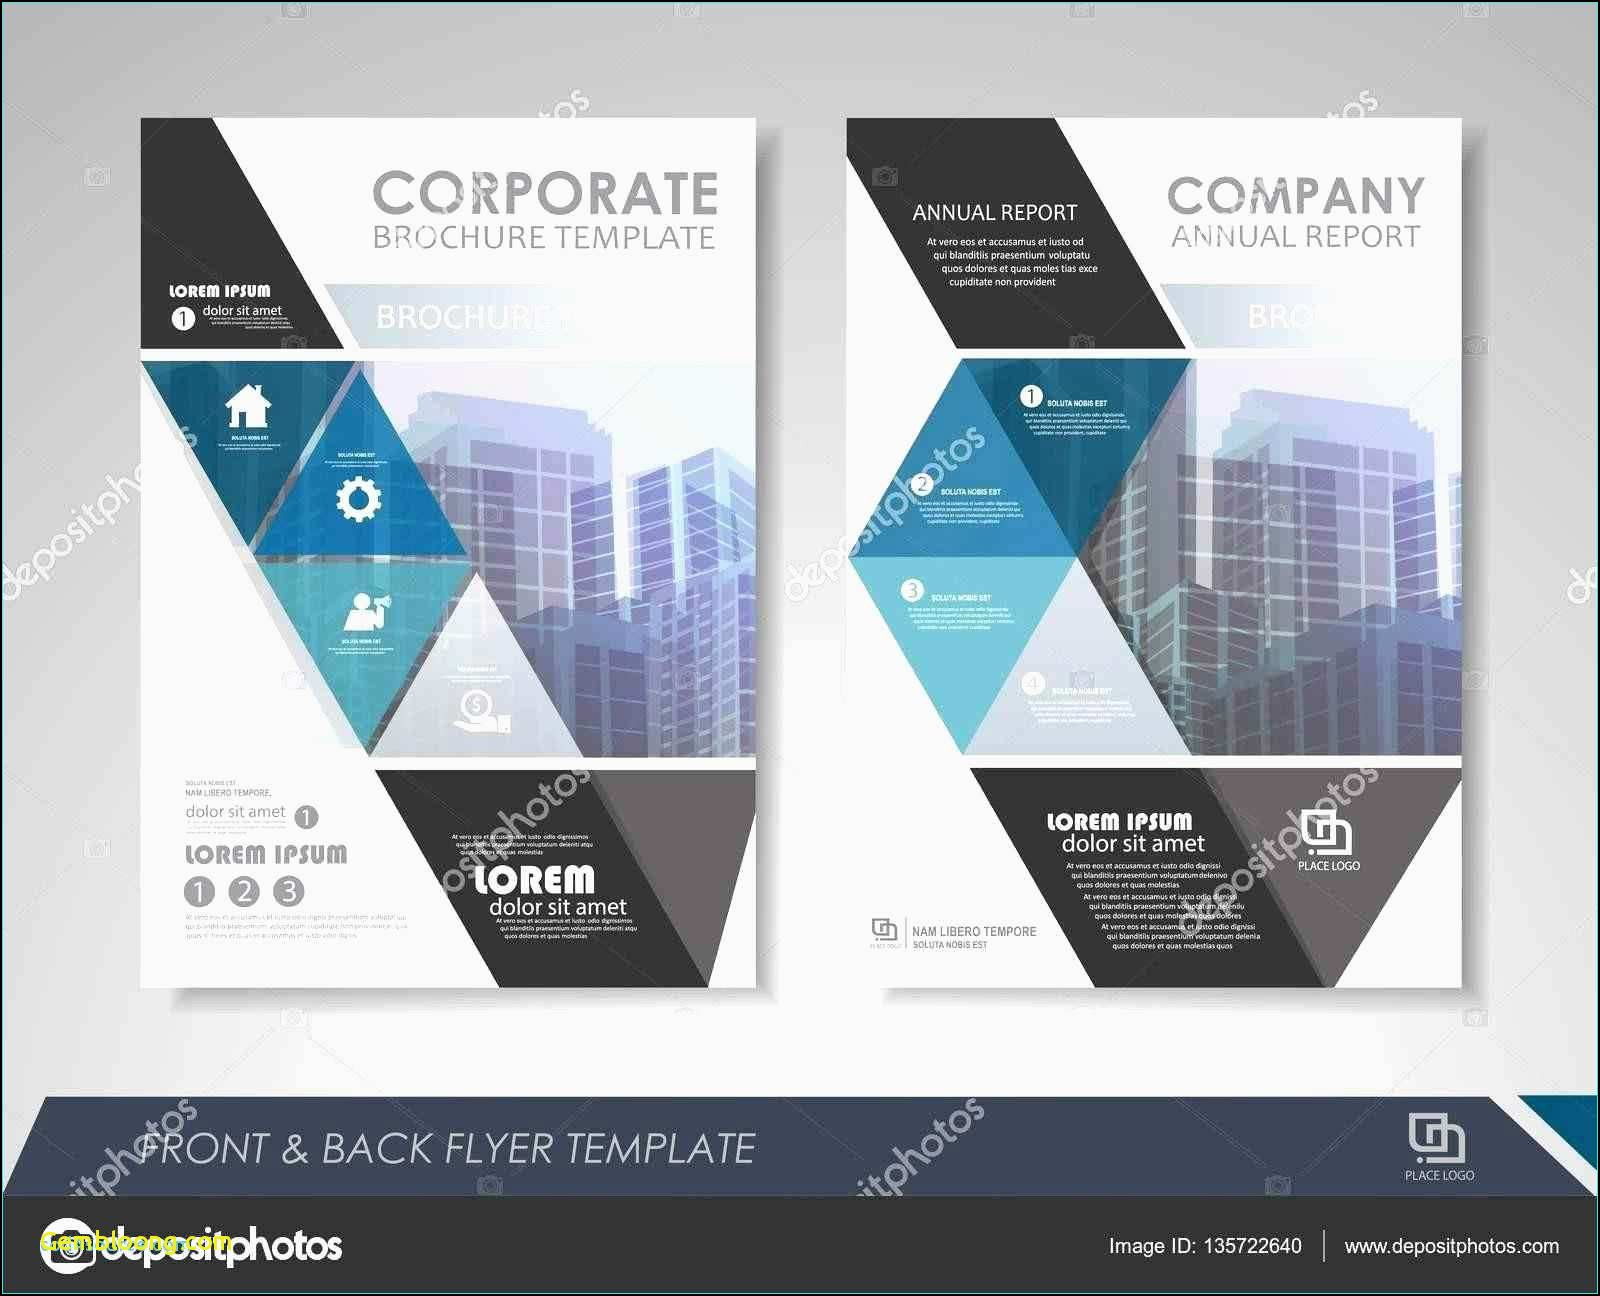 001 Wonderful Free Brochure Template Psd Photo  A4 Download File Front And Back TravelFull